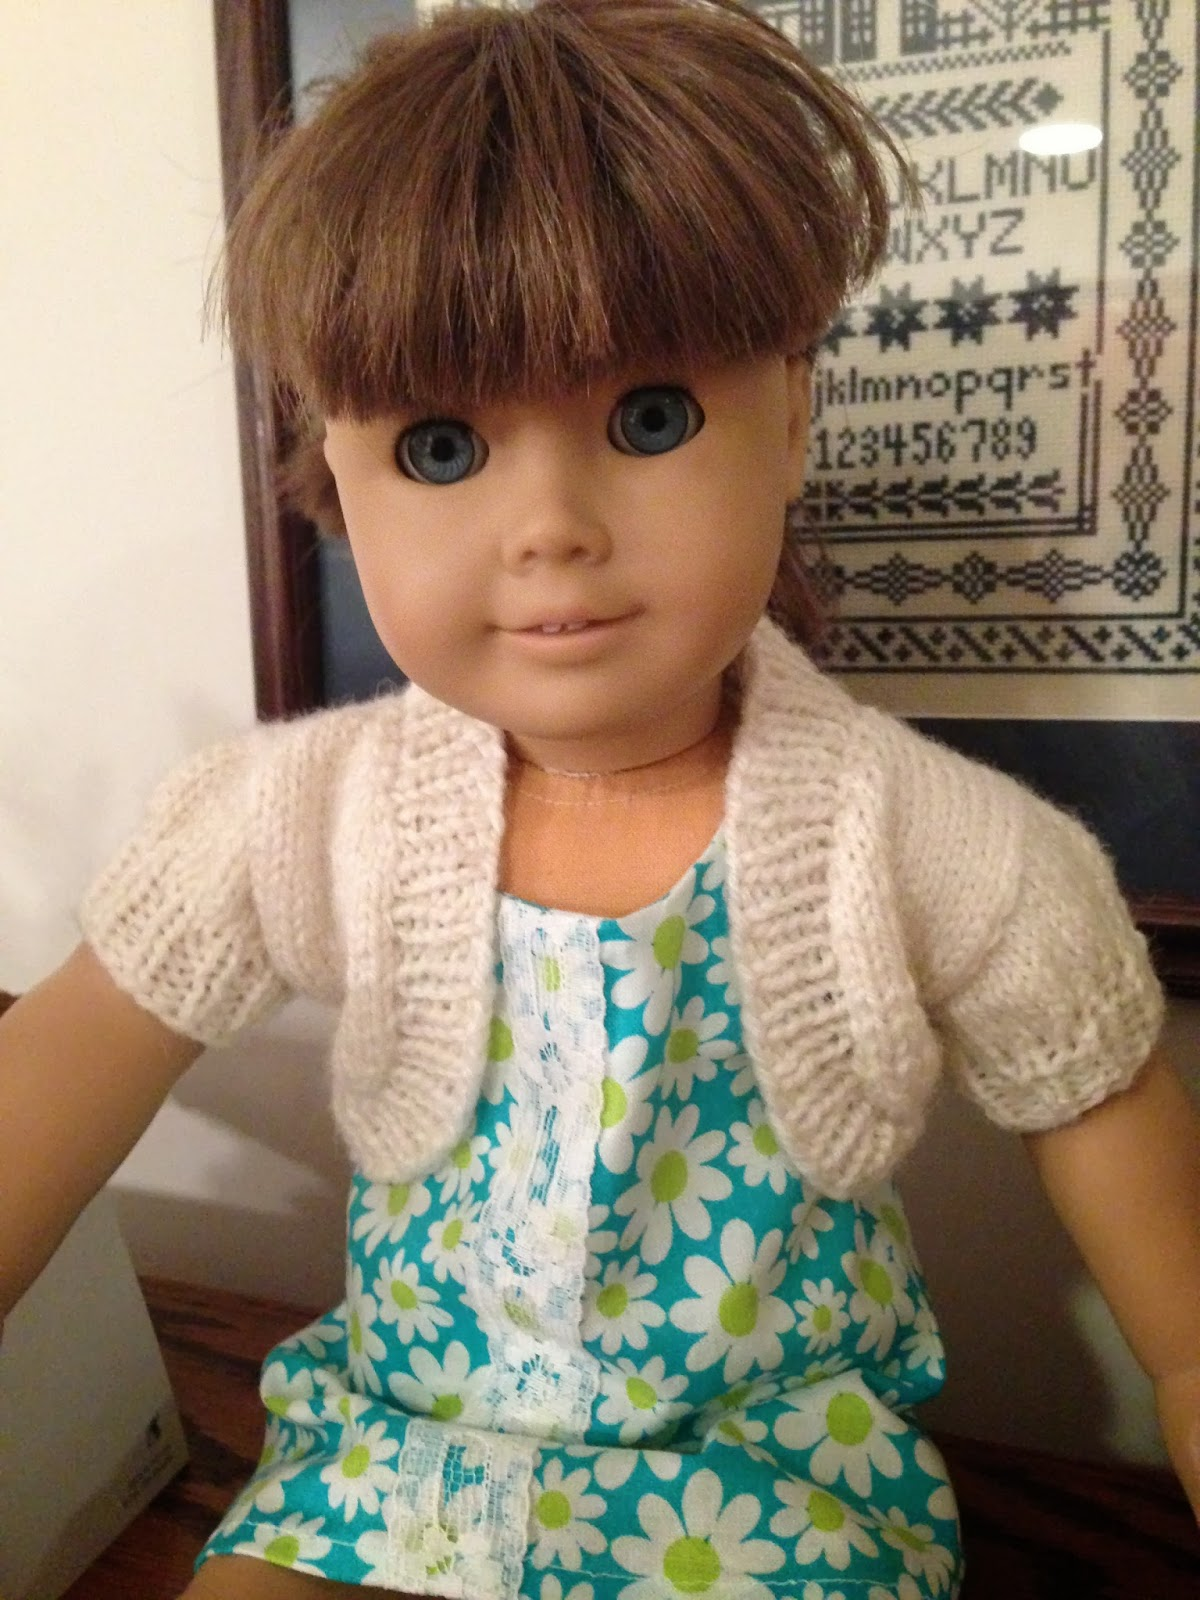 Celtic Heart Knitting and Quilting: More American Girl ...